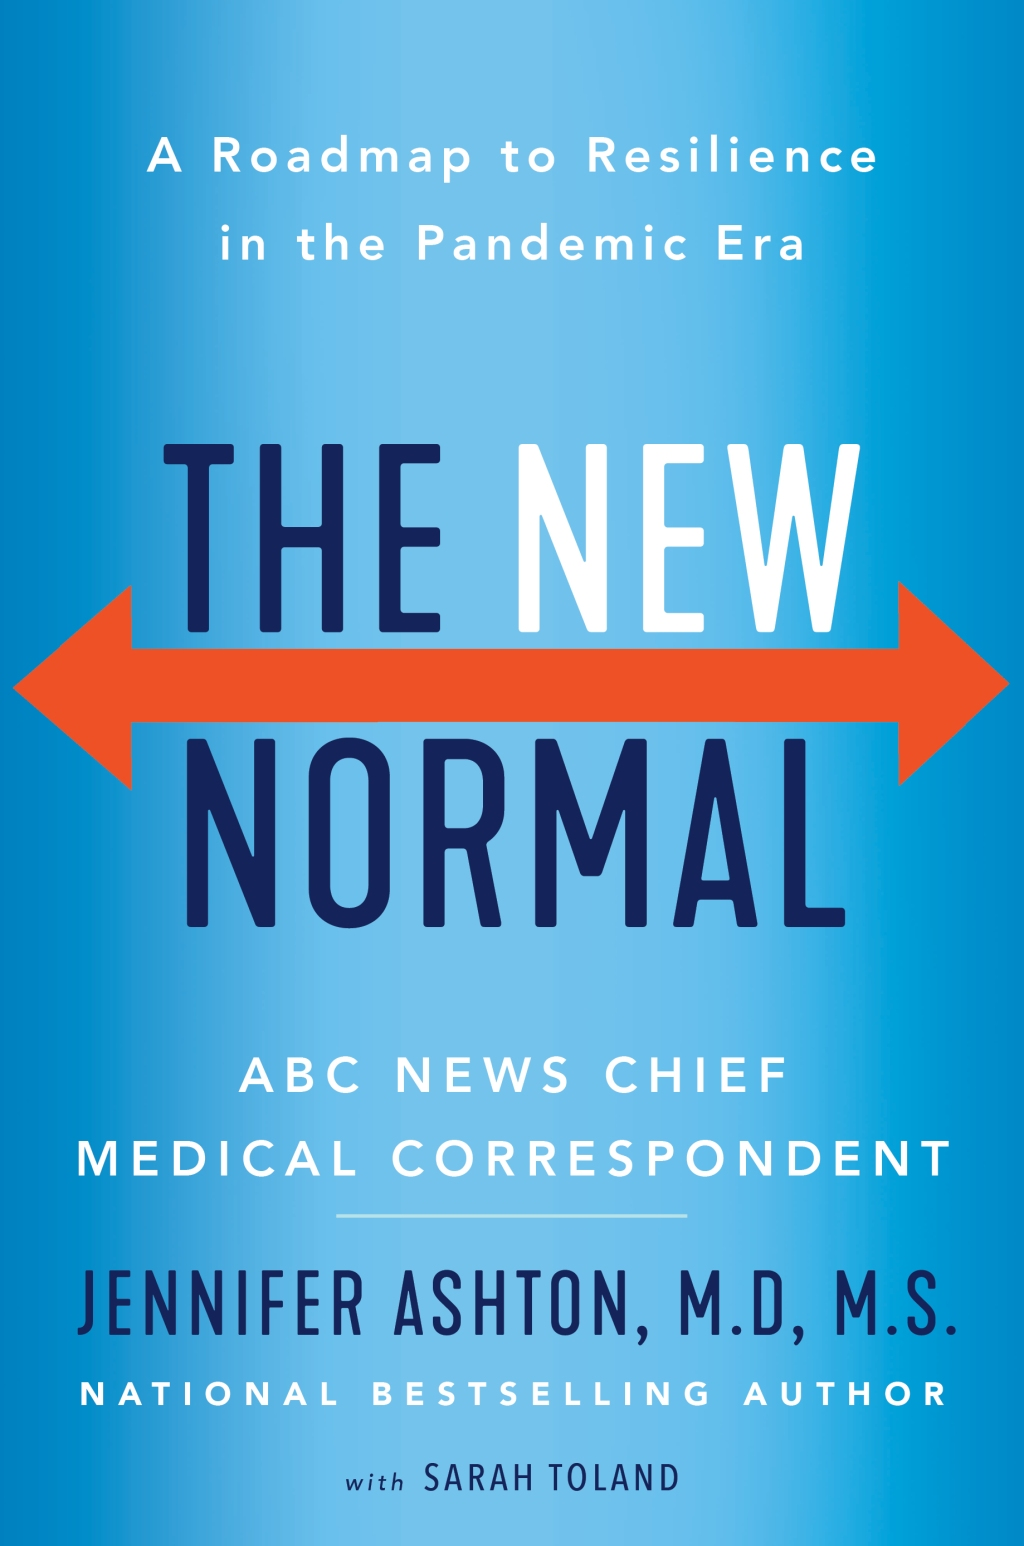 'The New Normal' by Dr Jennifer Ashton